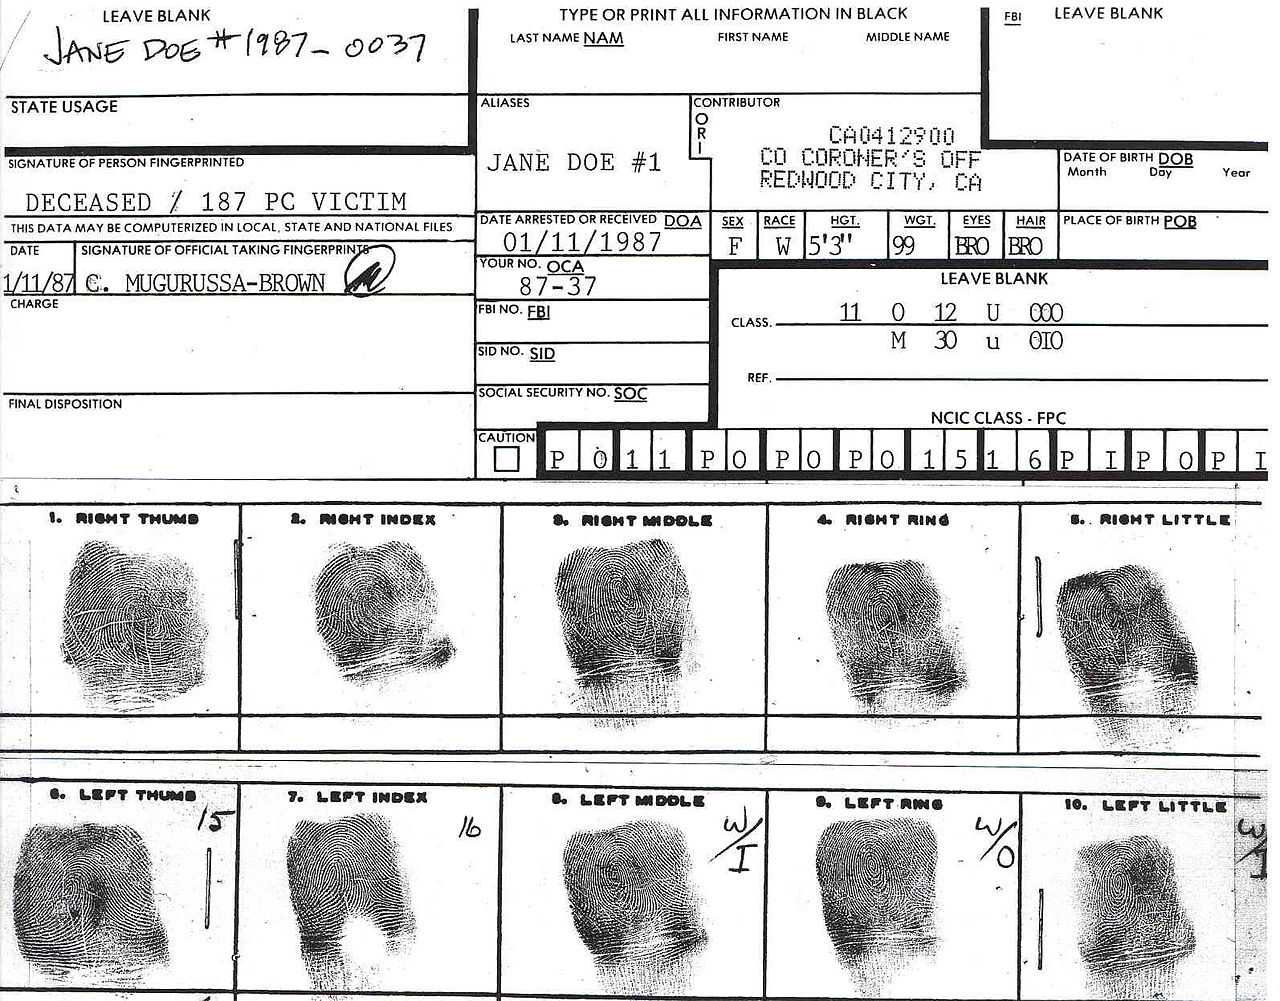 Medical Chart Template: San Mateo County Jane Doe fingerprint chart.jpg - Wikimedia ,Chart